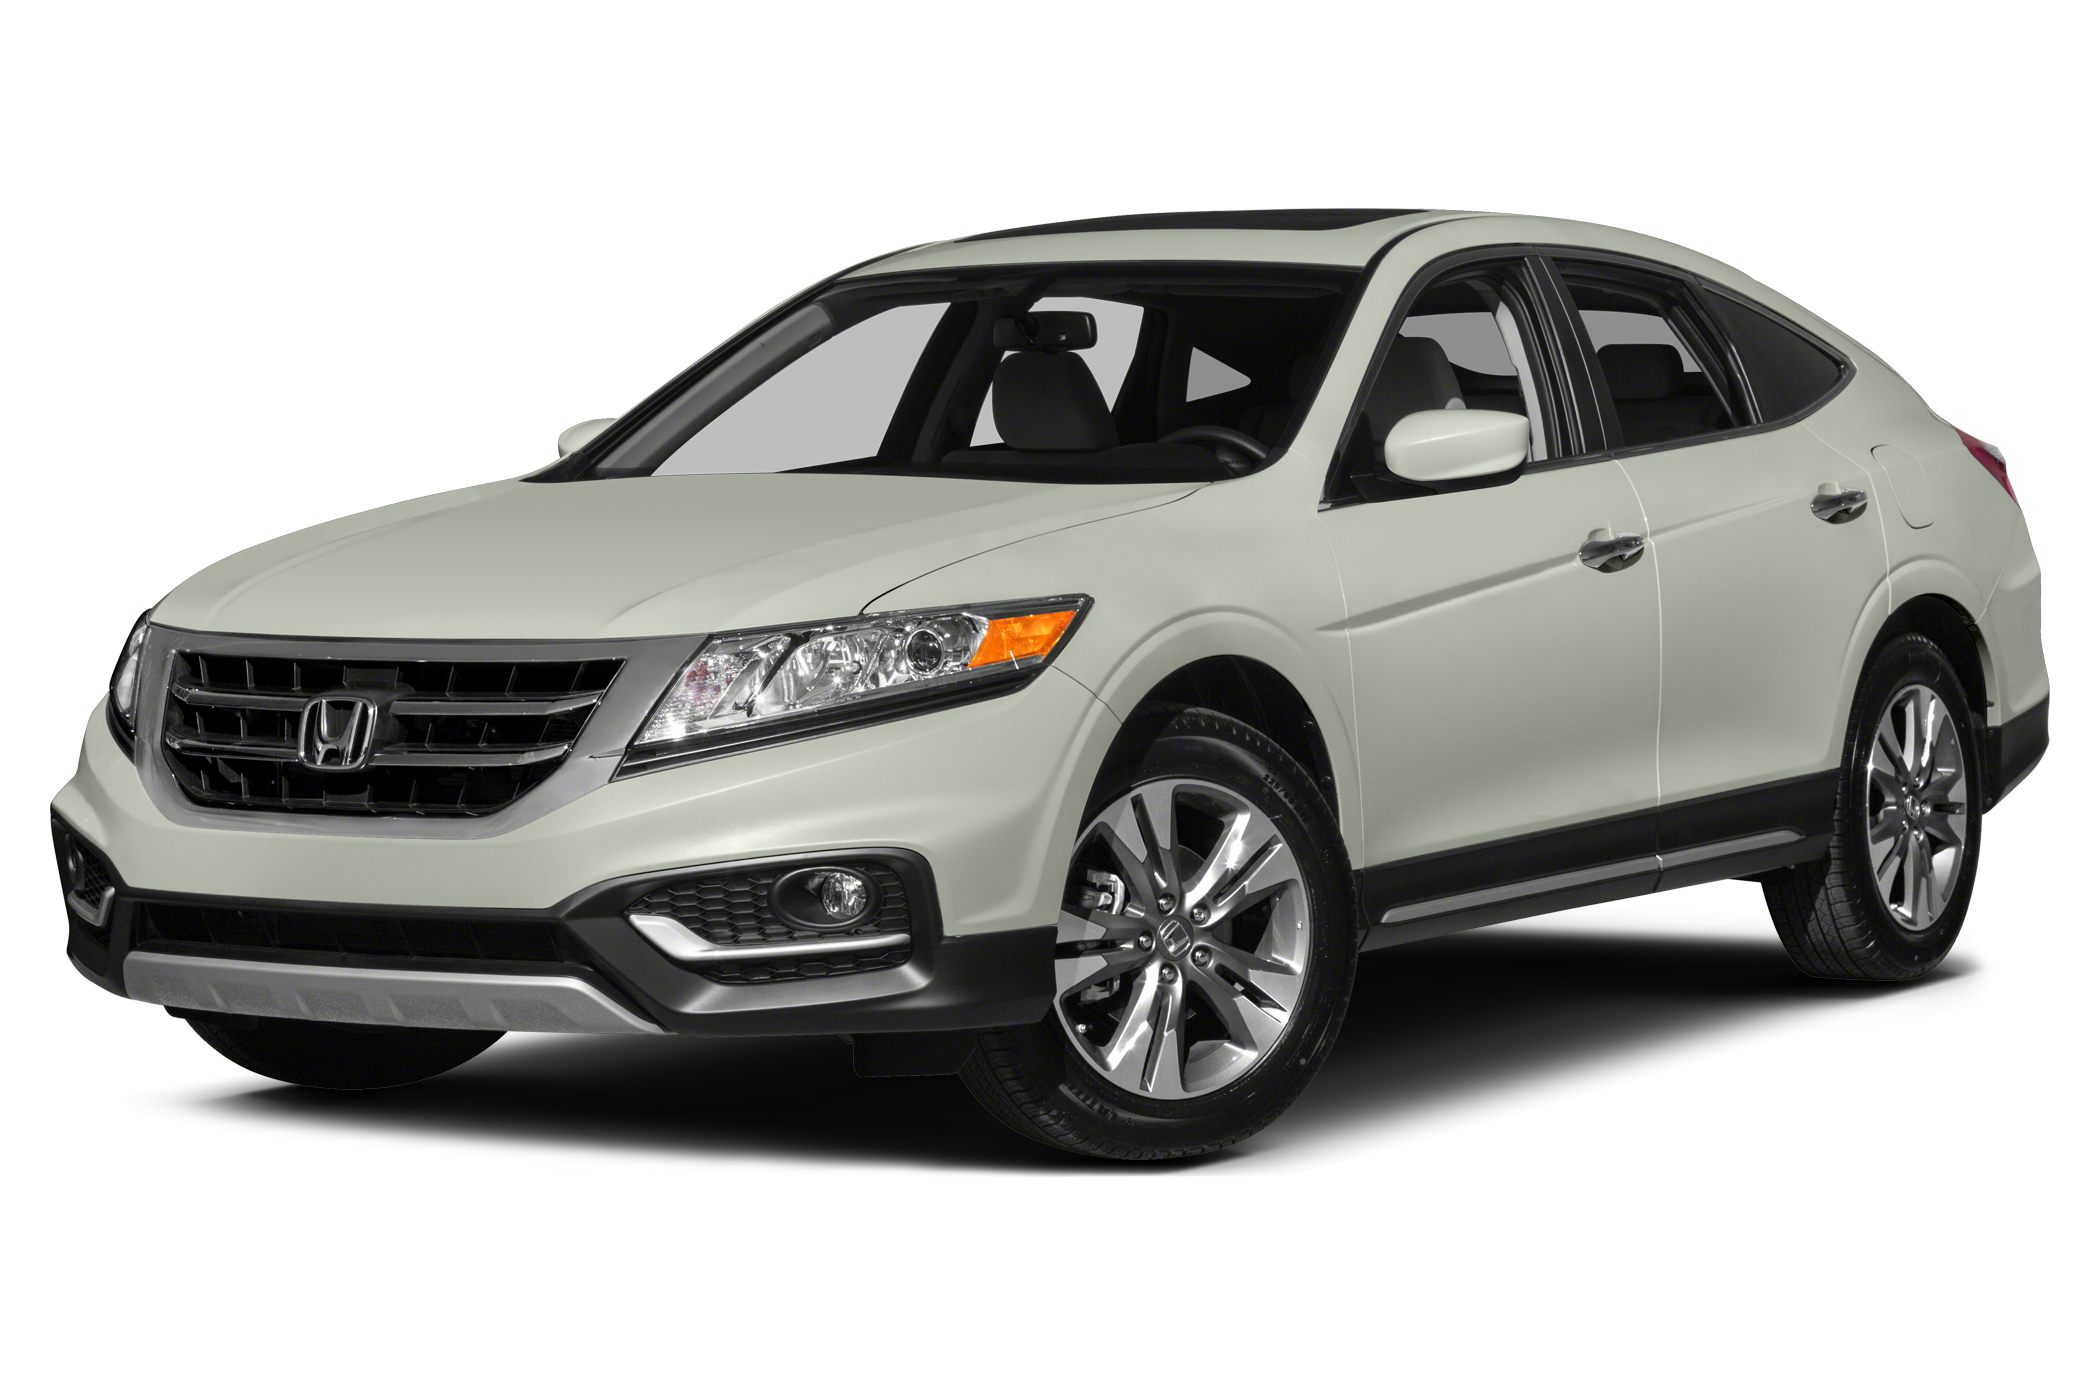 2013 Honda Crosstour EX-L Wagon for sale in Fort Wayne for $0 with 25,813 miles